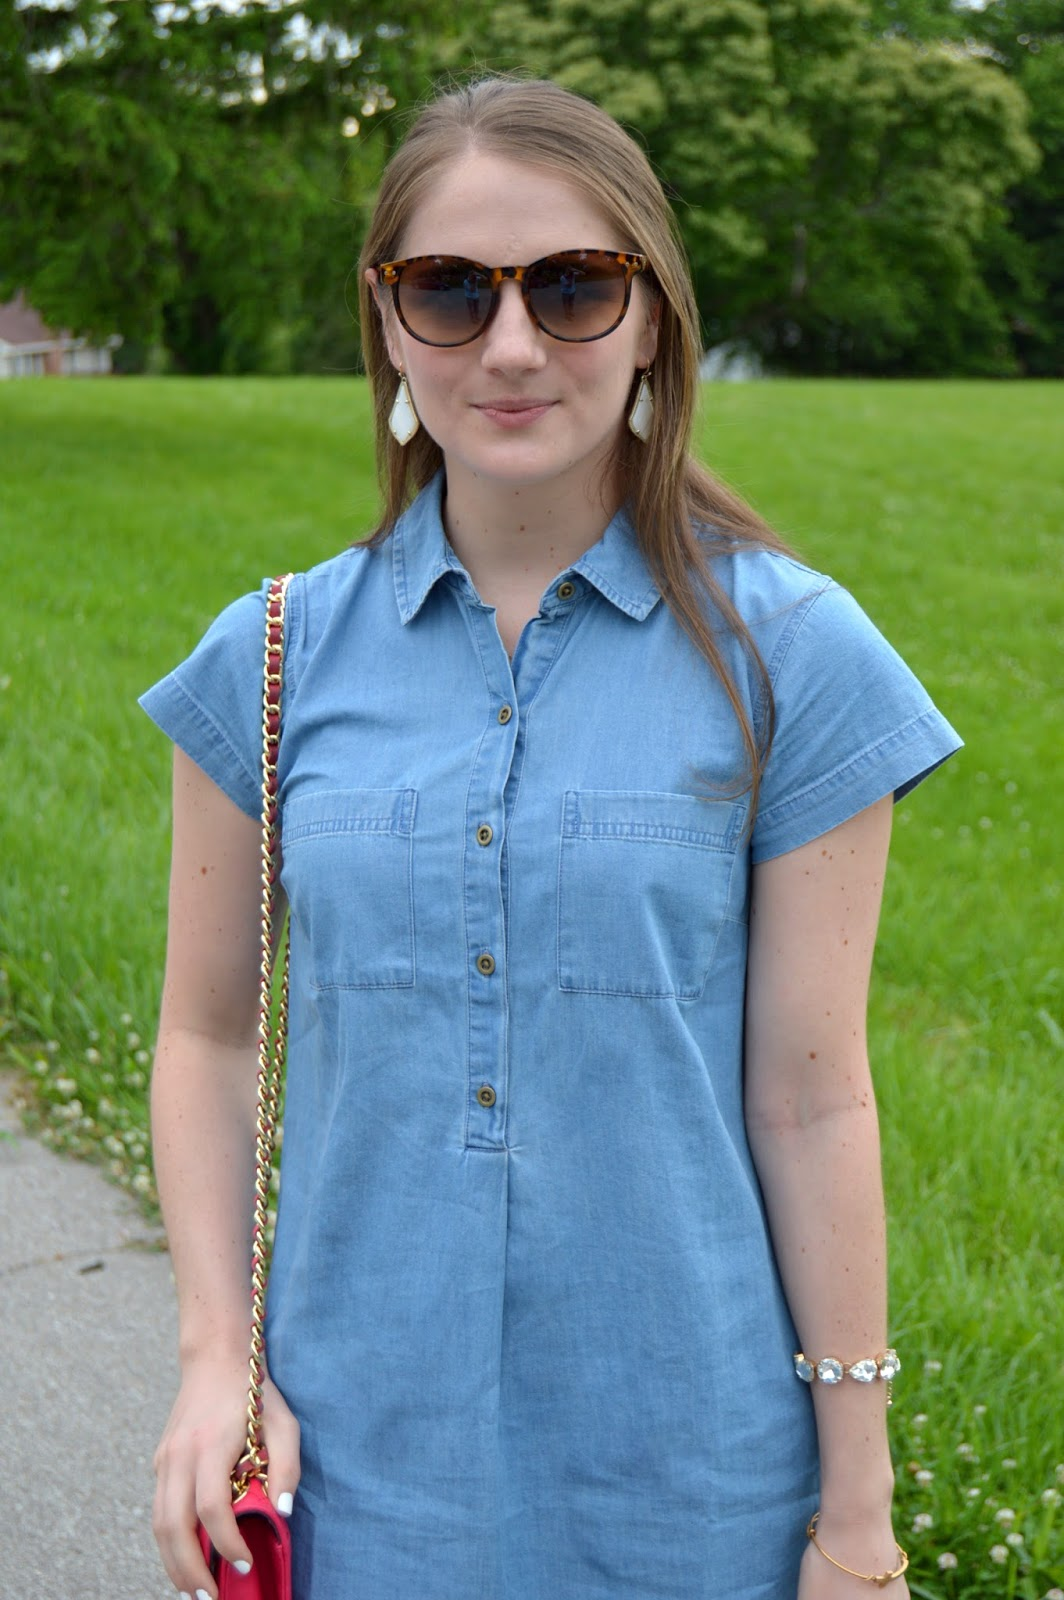 summer outfit ideas | what to wear with a chambray dress | summer lookbook | light wash chambray dress | chambray shirt dress | summer outfits | what to wear this summer | cute outfit ideas for summer | a memory of us